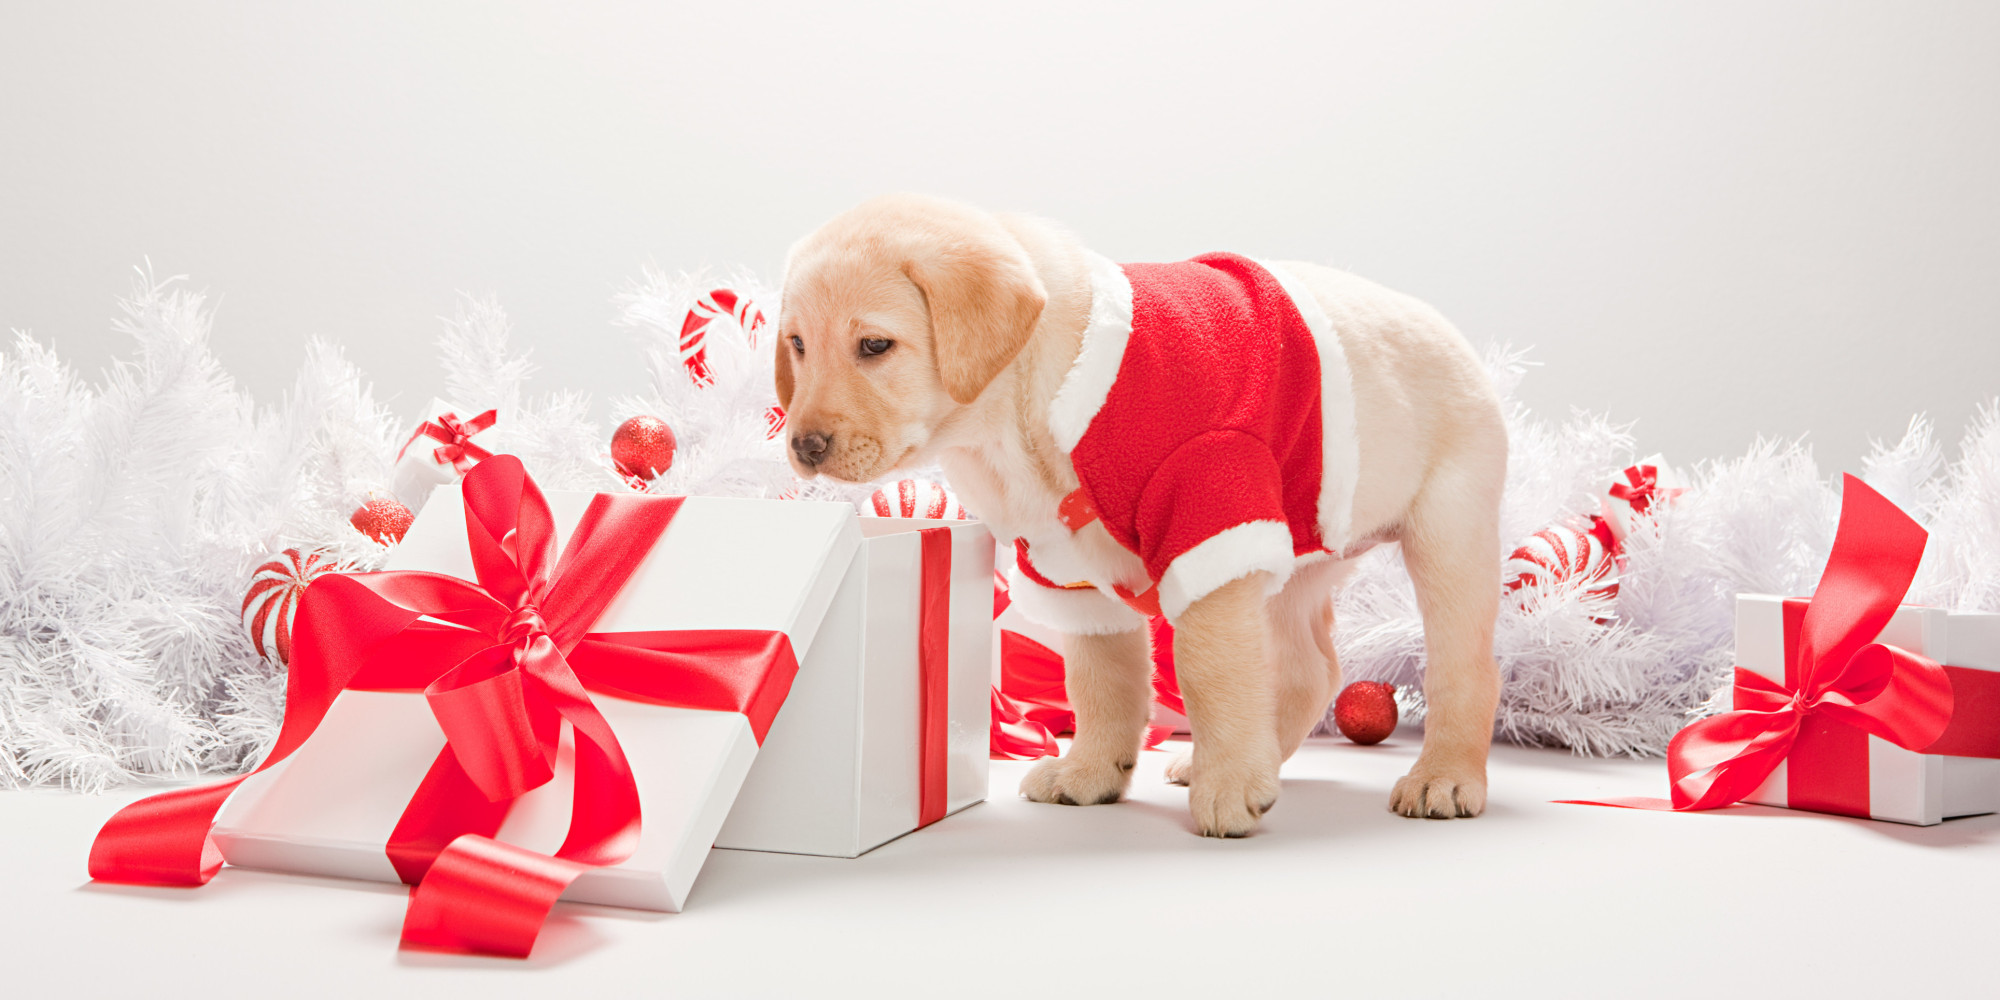 Best ideas about Dog Christmas Gift Ideas . Save or Pin Pet Gift Ideas What To Buy Your Dogs And Cats For Christmas Now.